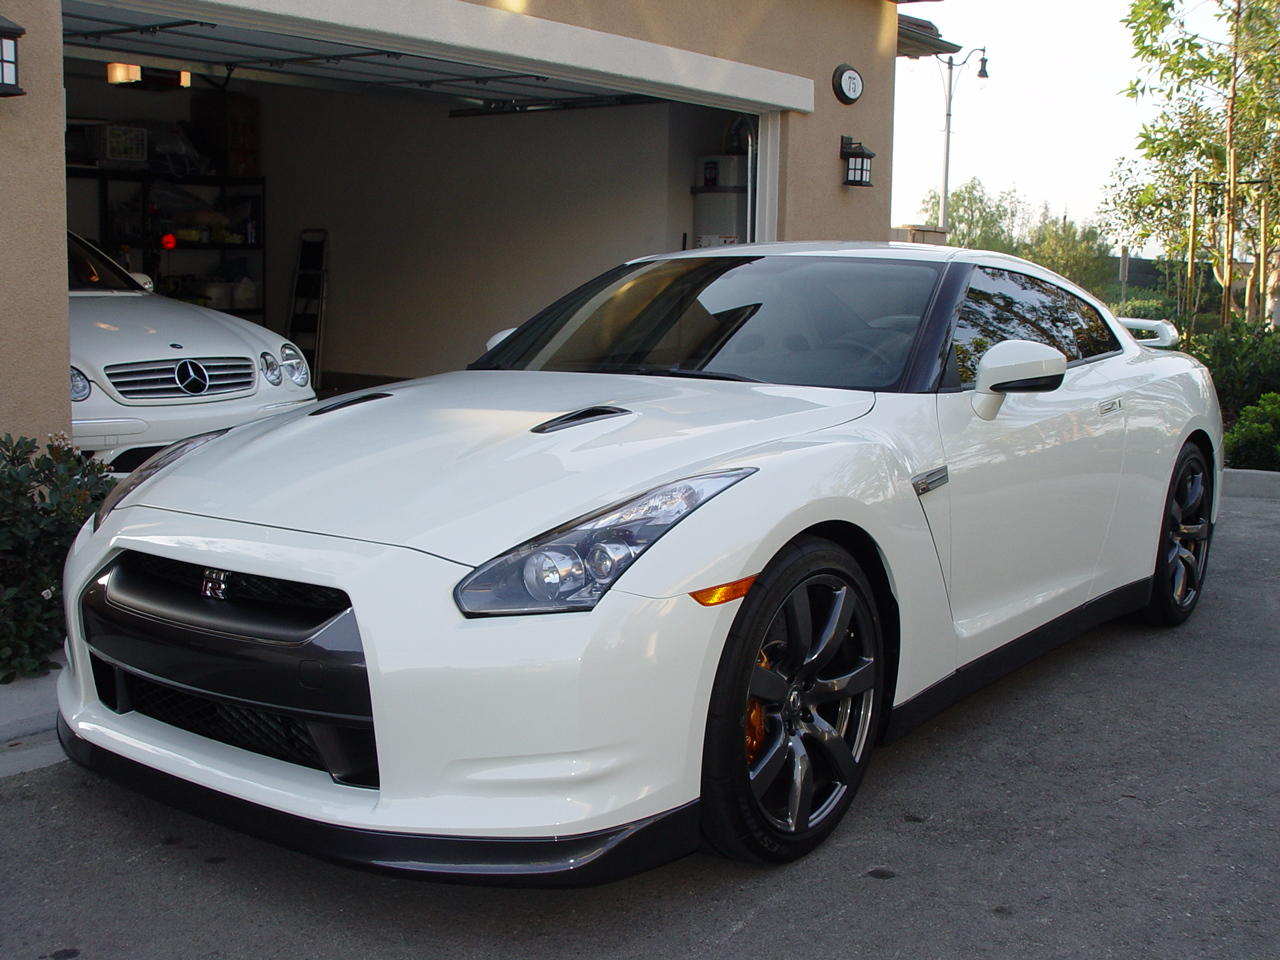 2009 nissan gt r pictures information and specs auto. Black Bedroom Furniture Sets. Home Design Ideas